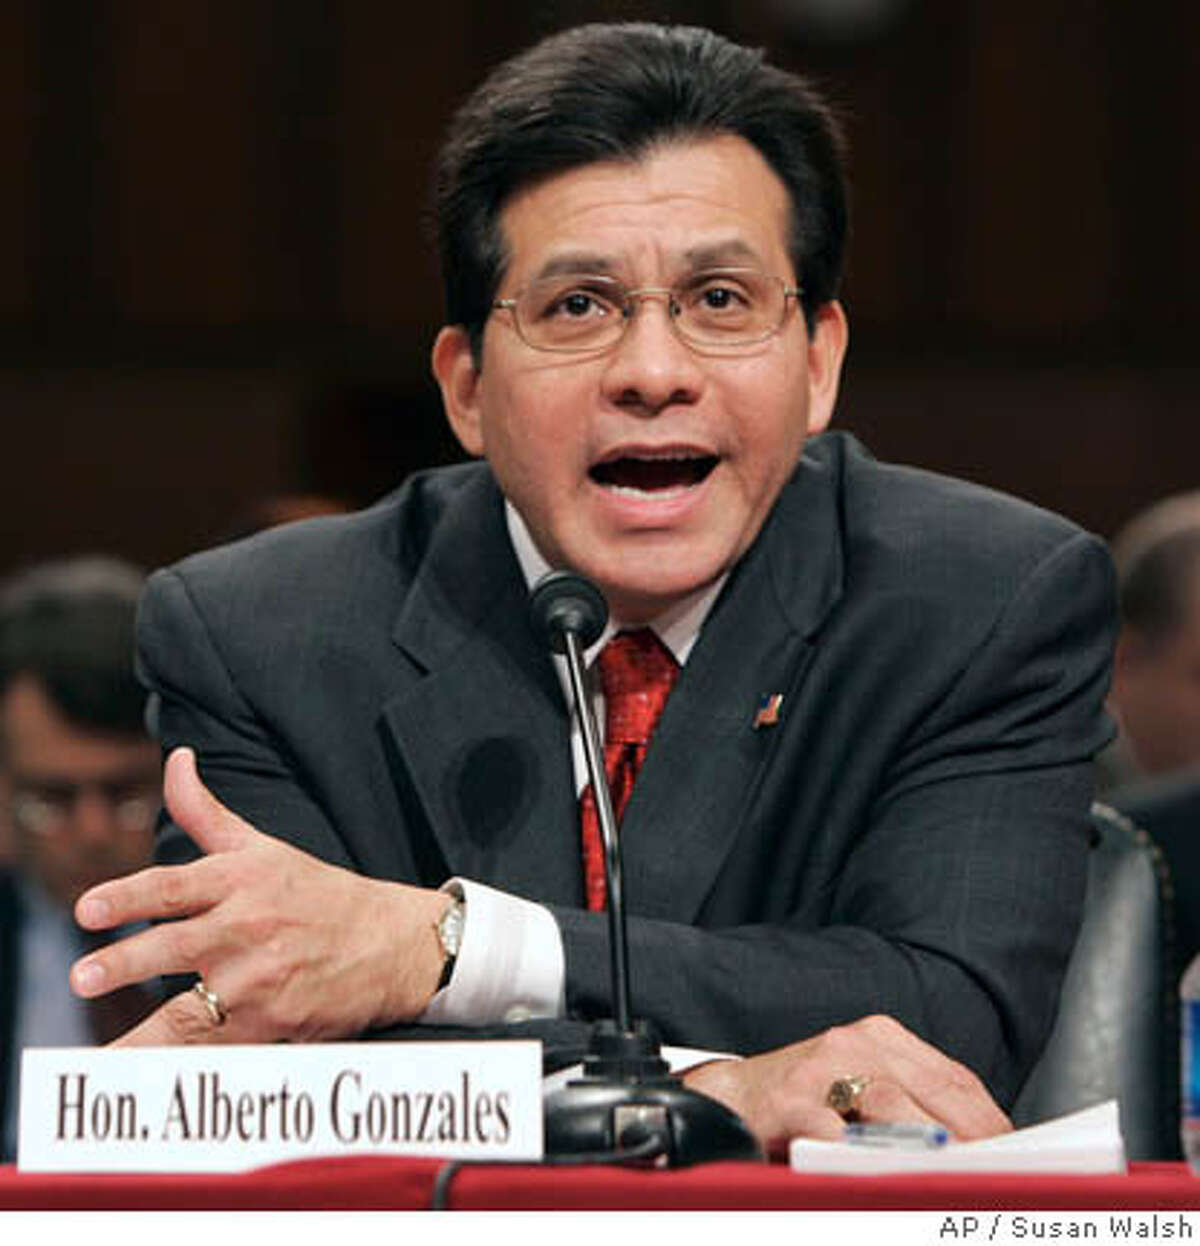 Attorney General Alberto Gonzales testifies before the Senate Judiciary Committee in the U. S. Capitol in Washington Thursday, April 19, 2007 about the controversial dismissal of eight U.S. attorneys. (AP Photo/Susan Walsh)